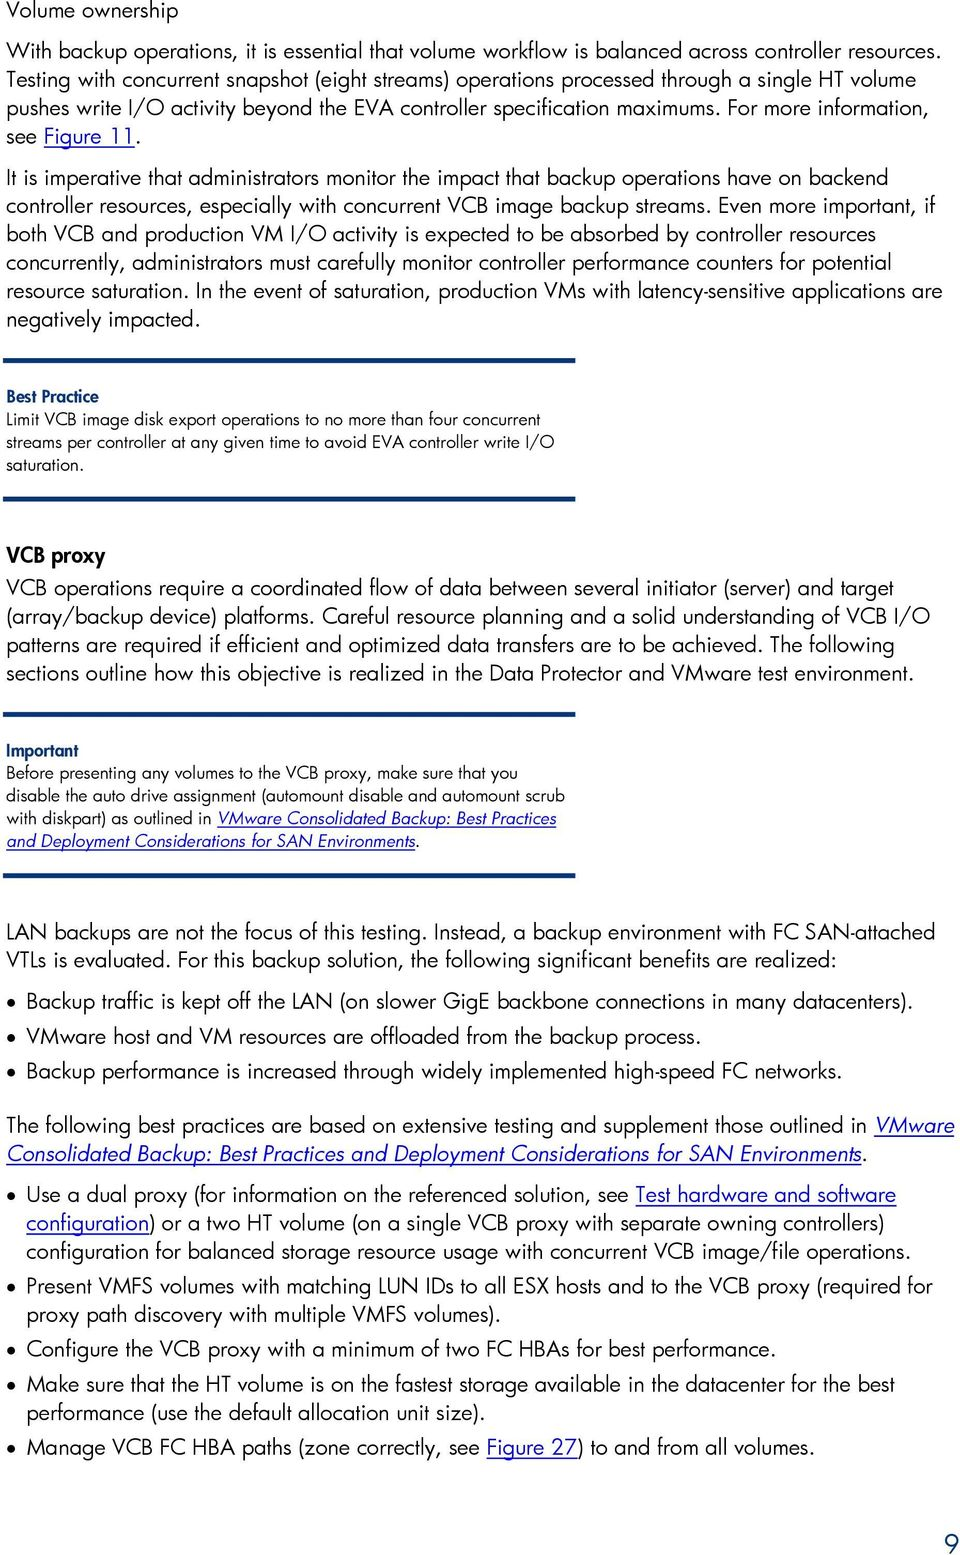 Backup and recovery best practices for the HP EVA array in a VMware